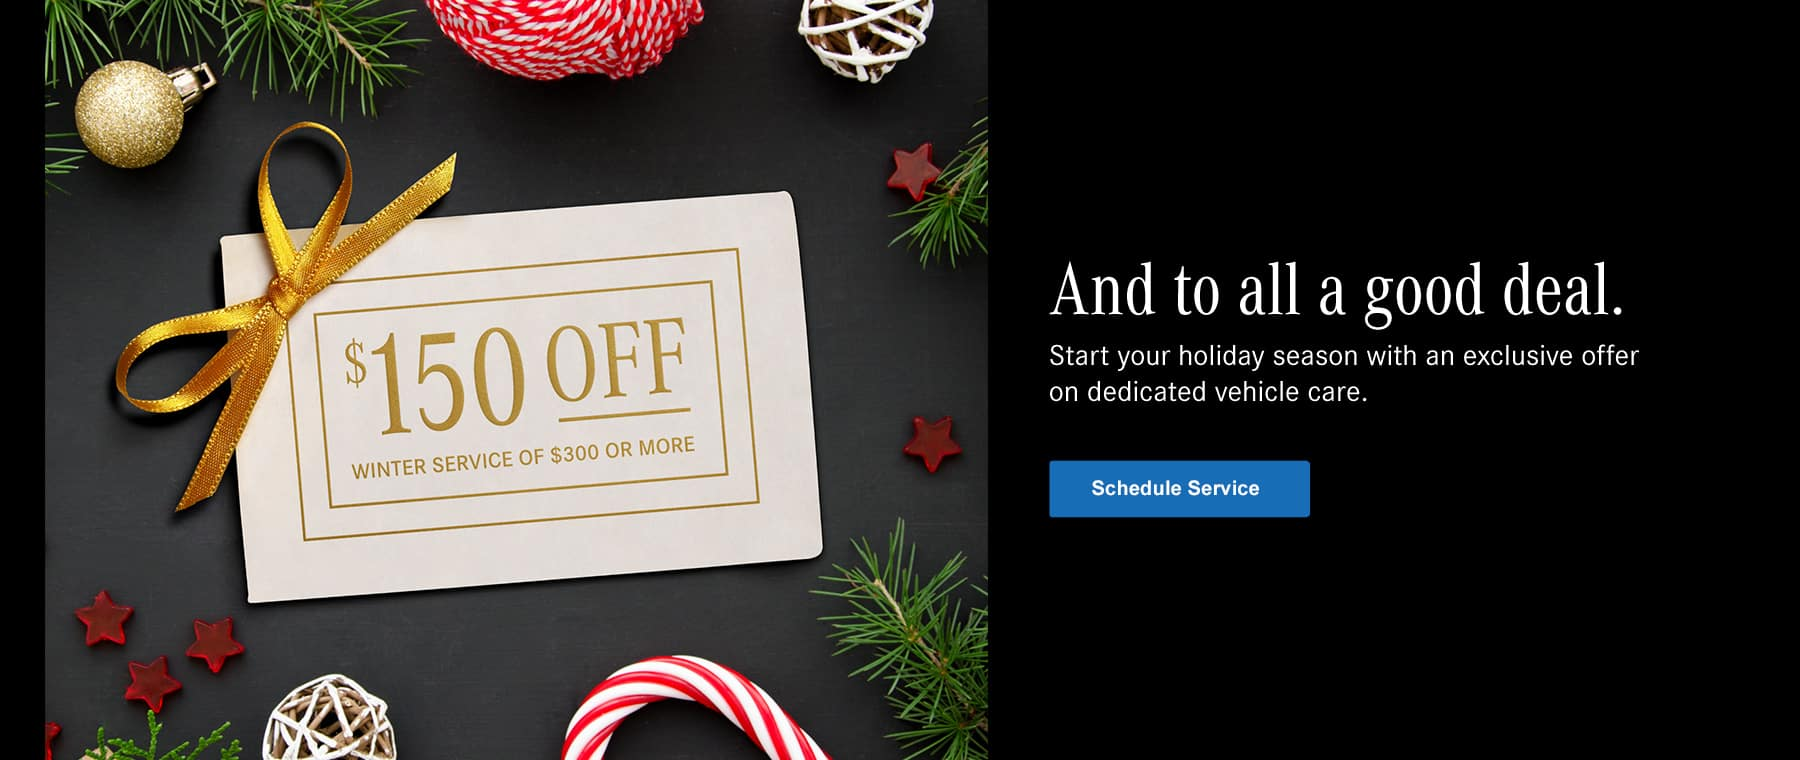 $150 off winter service of $300 or more